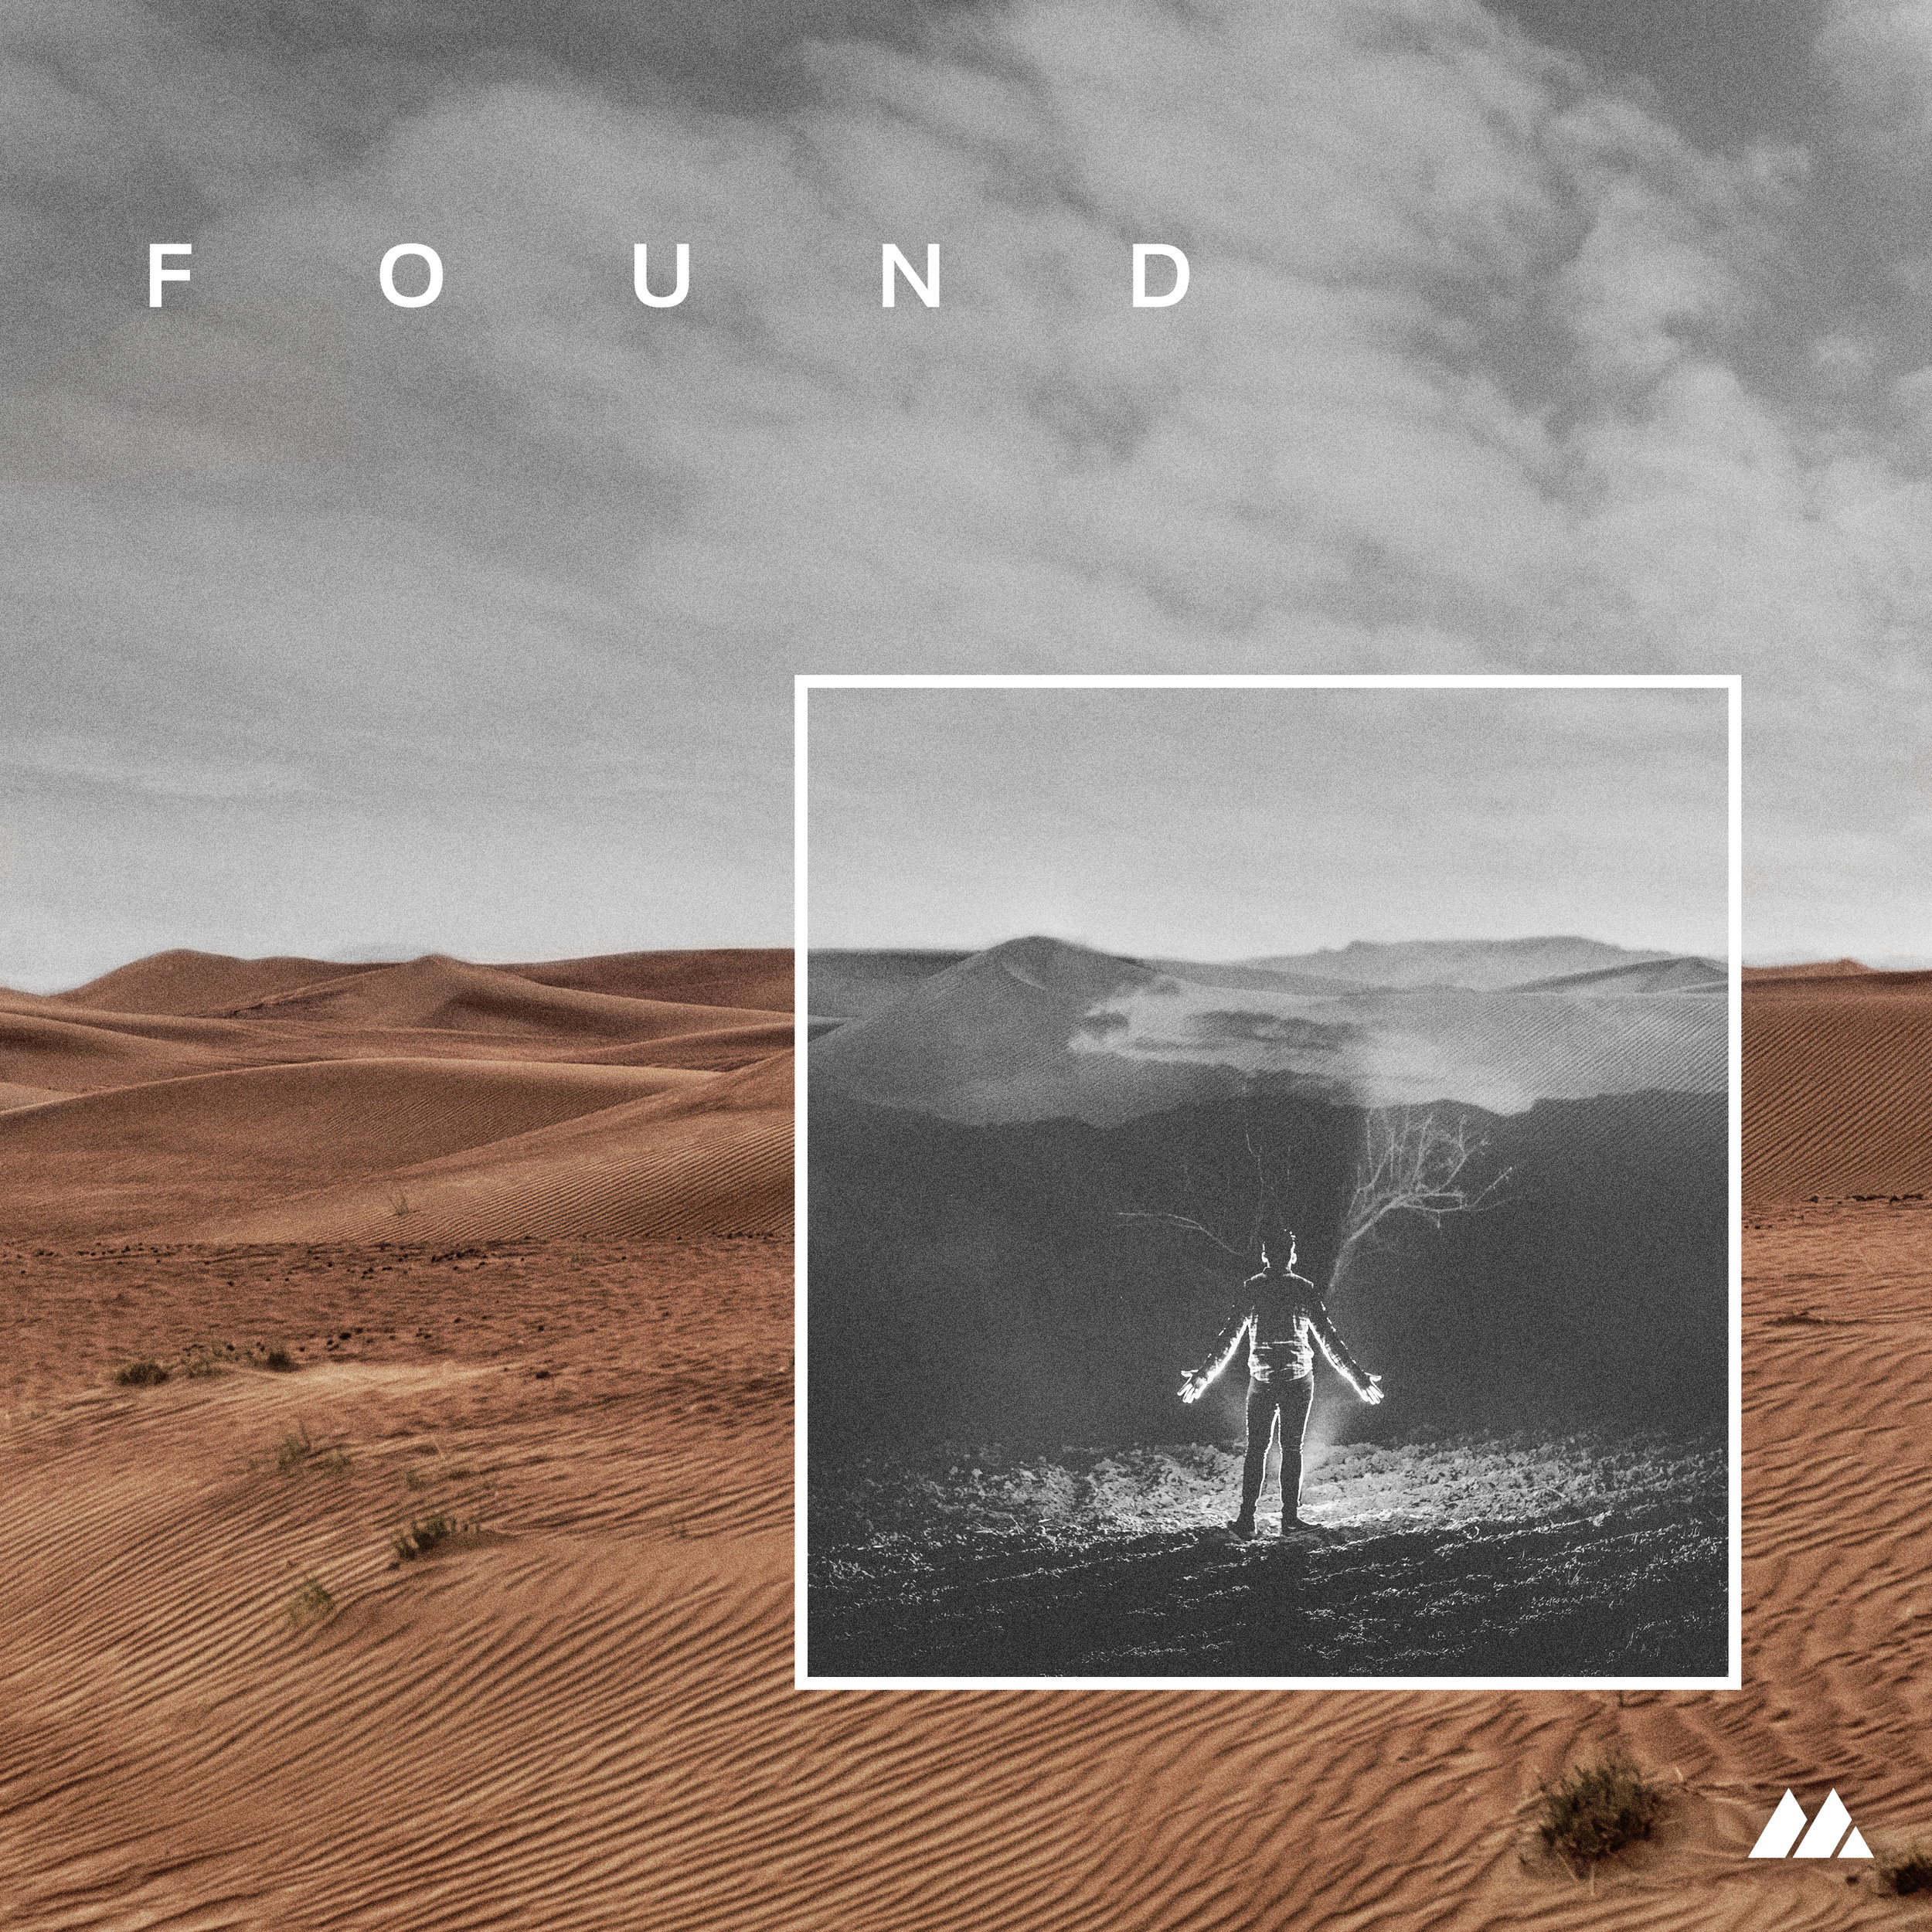 Found (Single) - Download everything you need to lead I Need You, our latest single, including chord charts, lyrics, and tracks. Contact us if you have questions or need anything else!